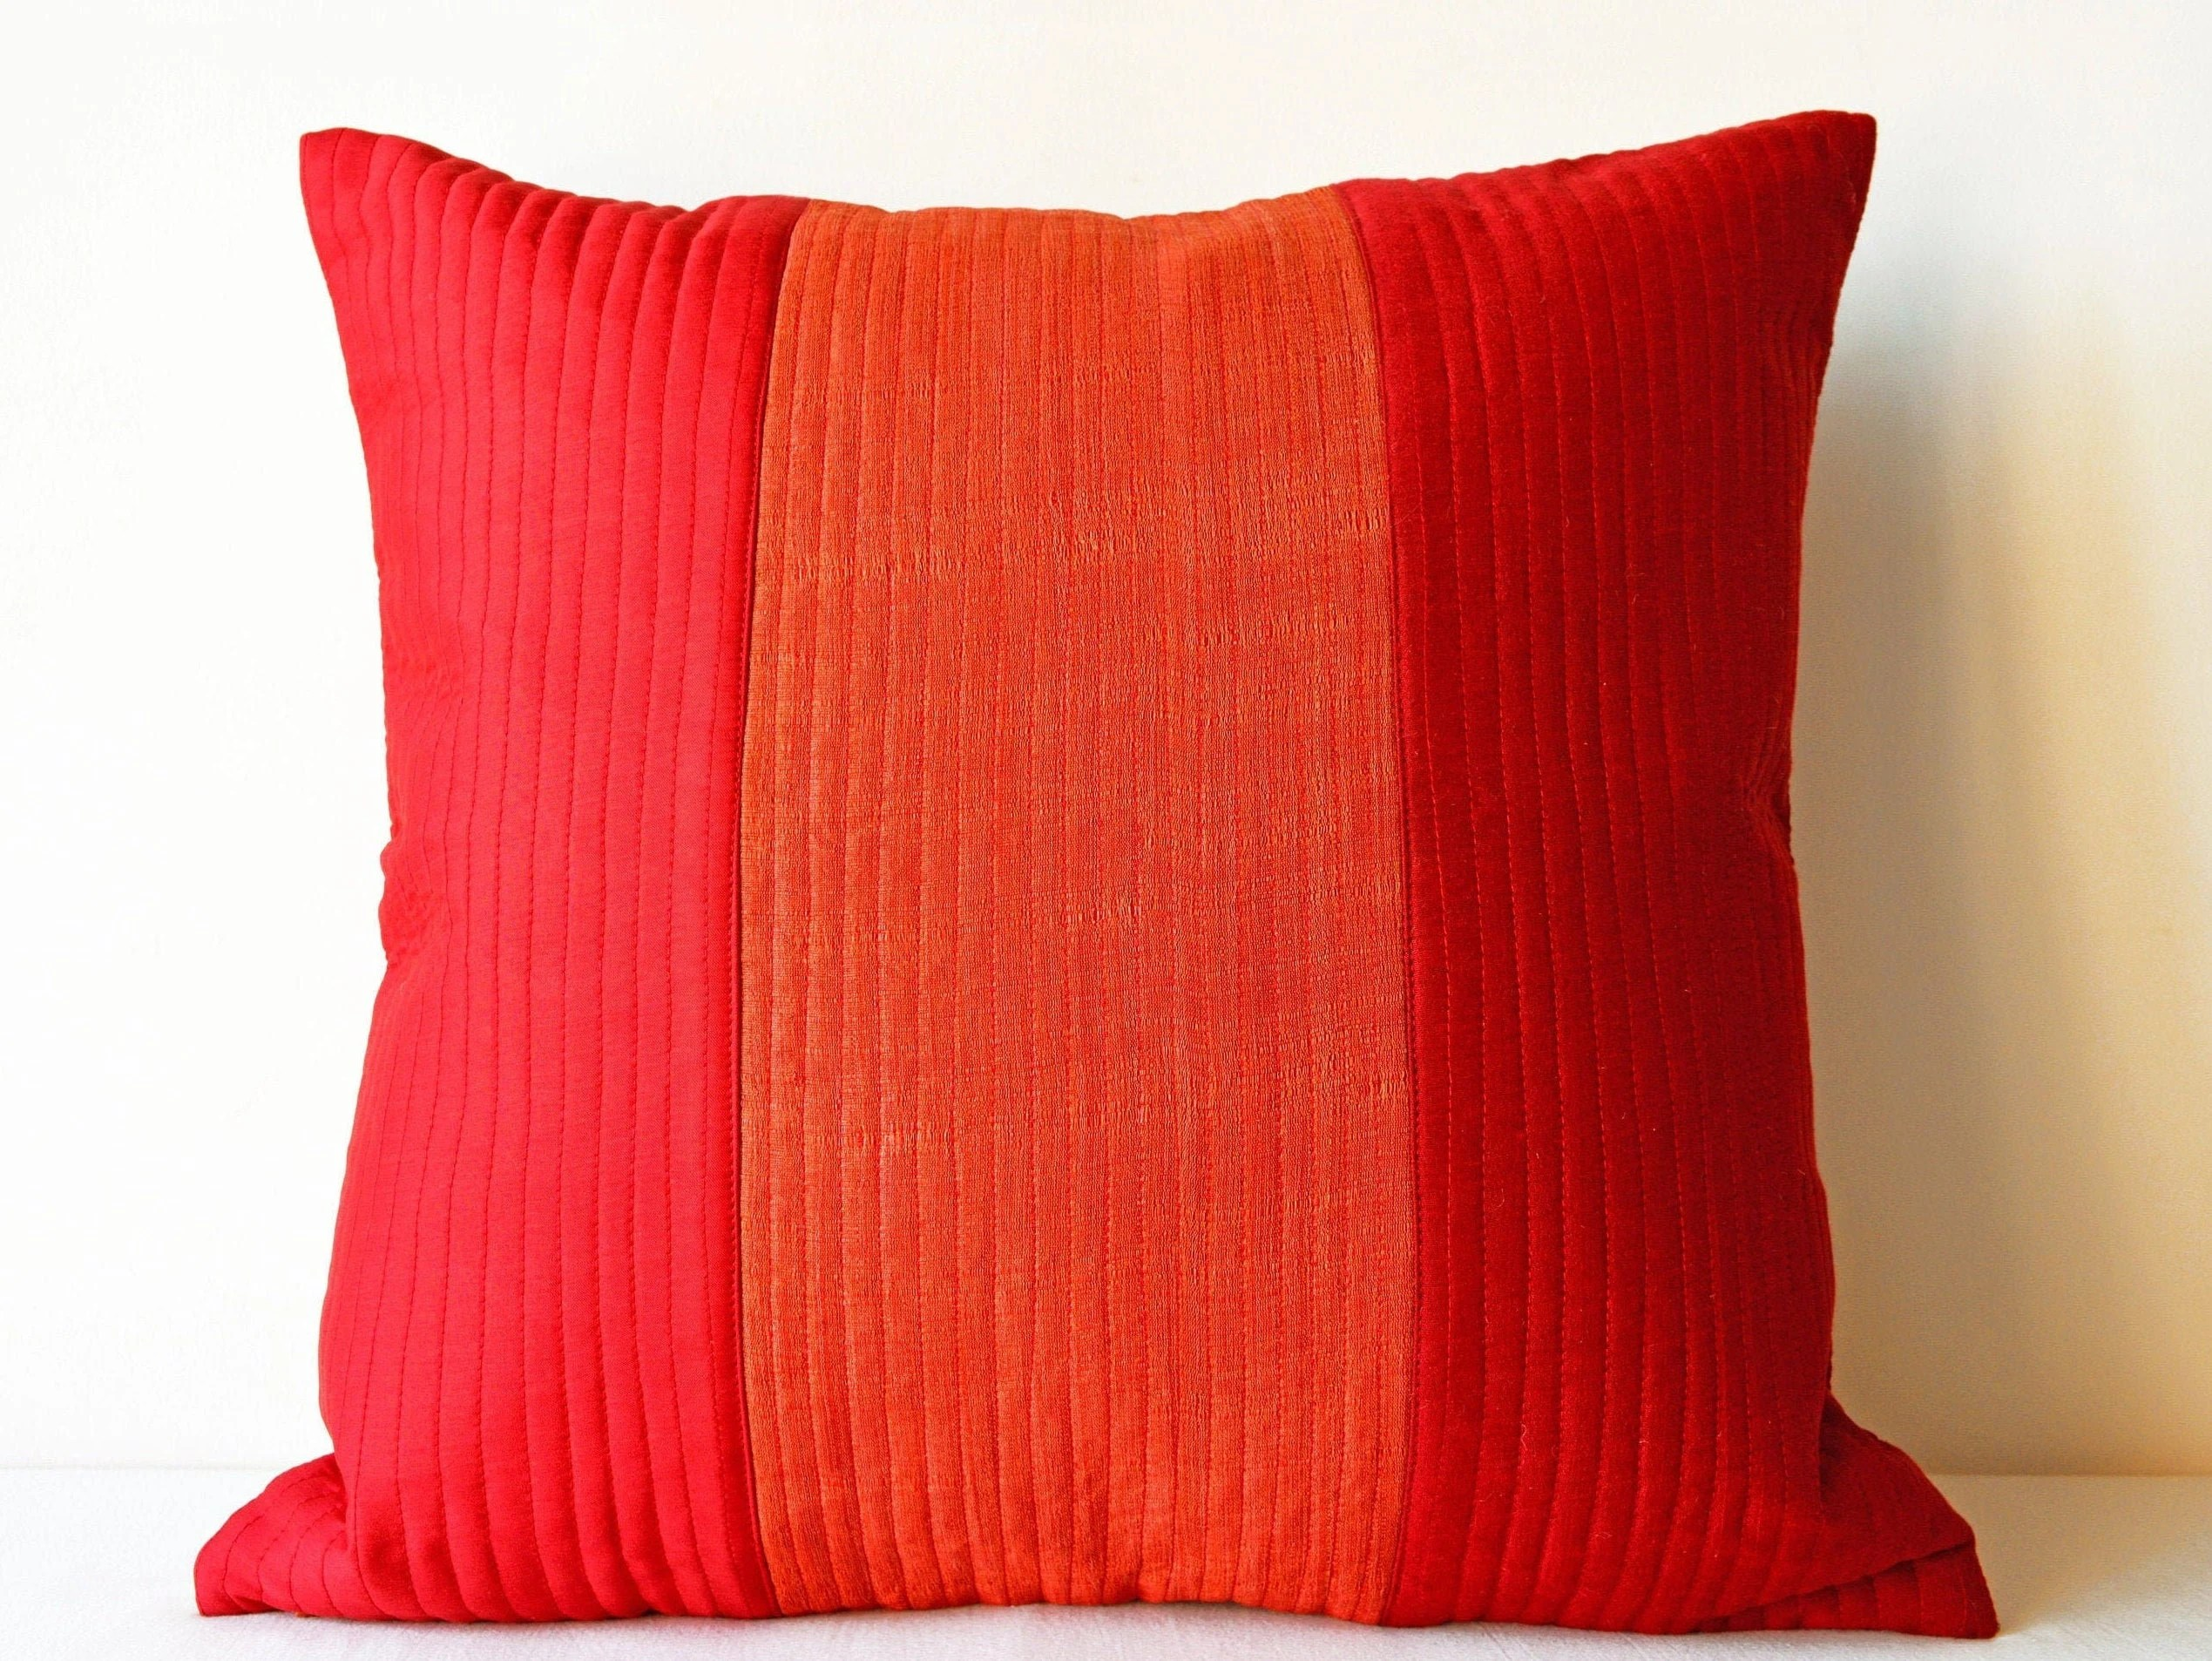 red pillow covers 20x20 pillow cover 18x18 throw pillow covers red orange cushion 16x16 decorative pillow cover rust orange couch pillows